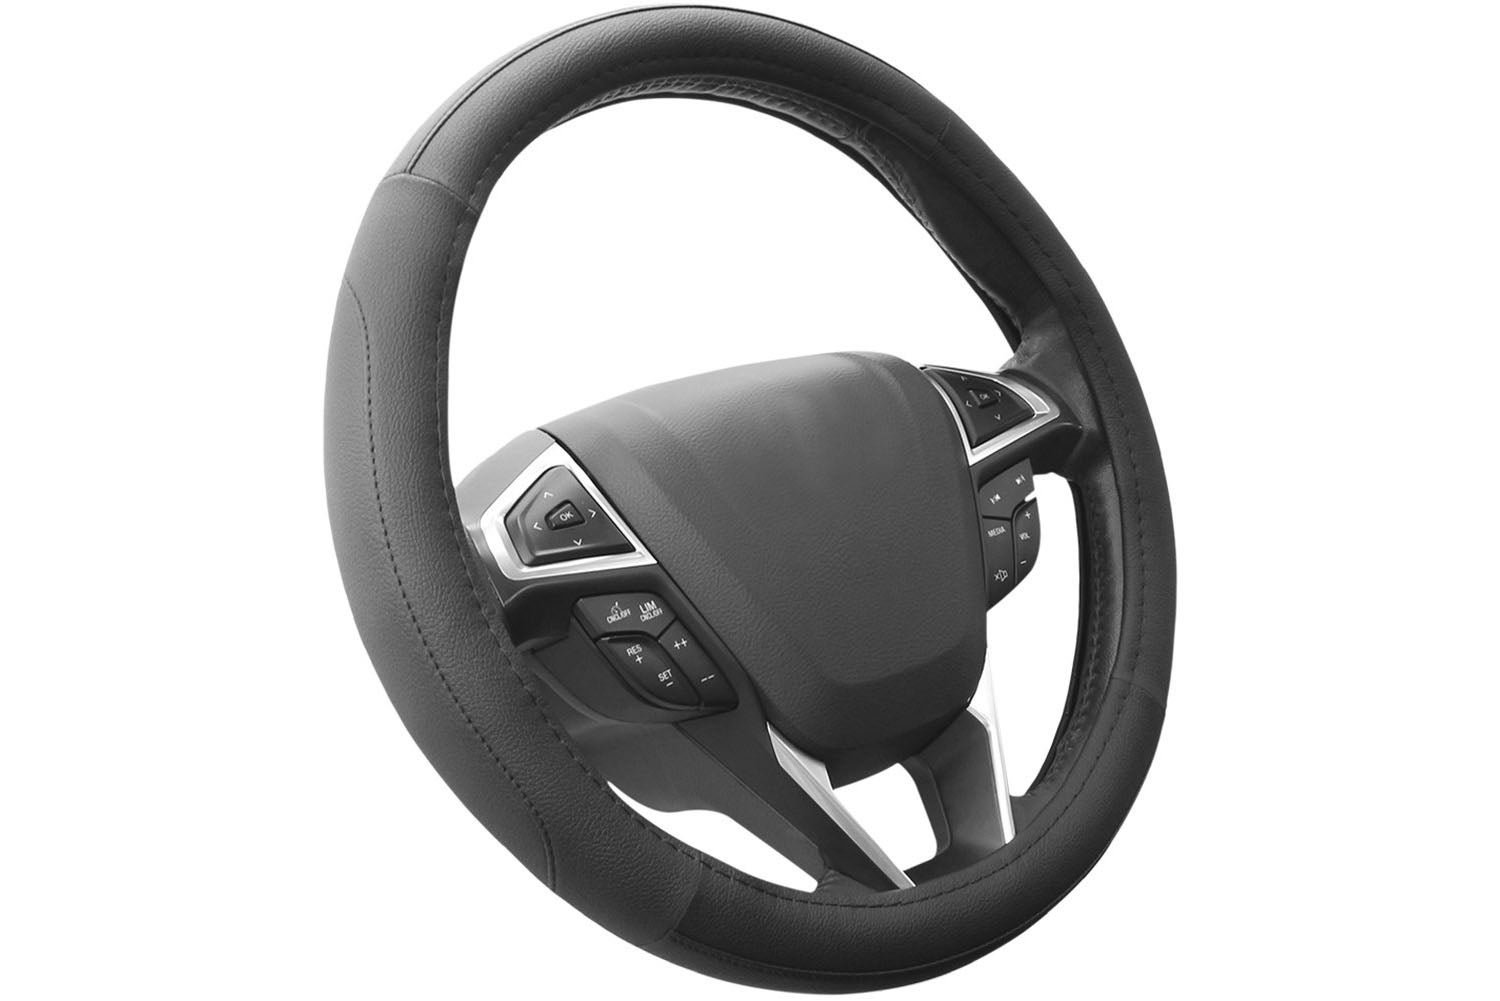 A grippier steering wheel provides better control